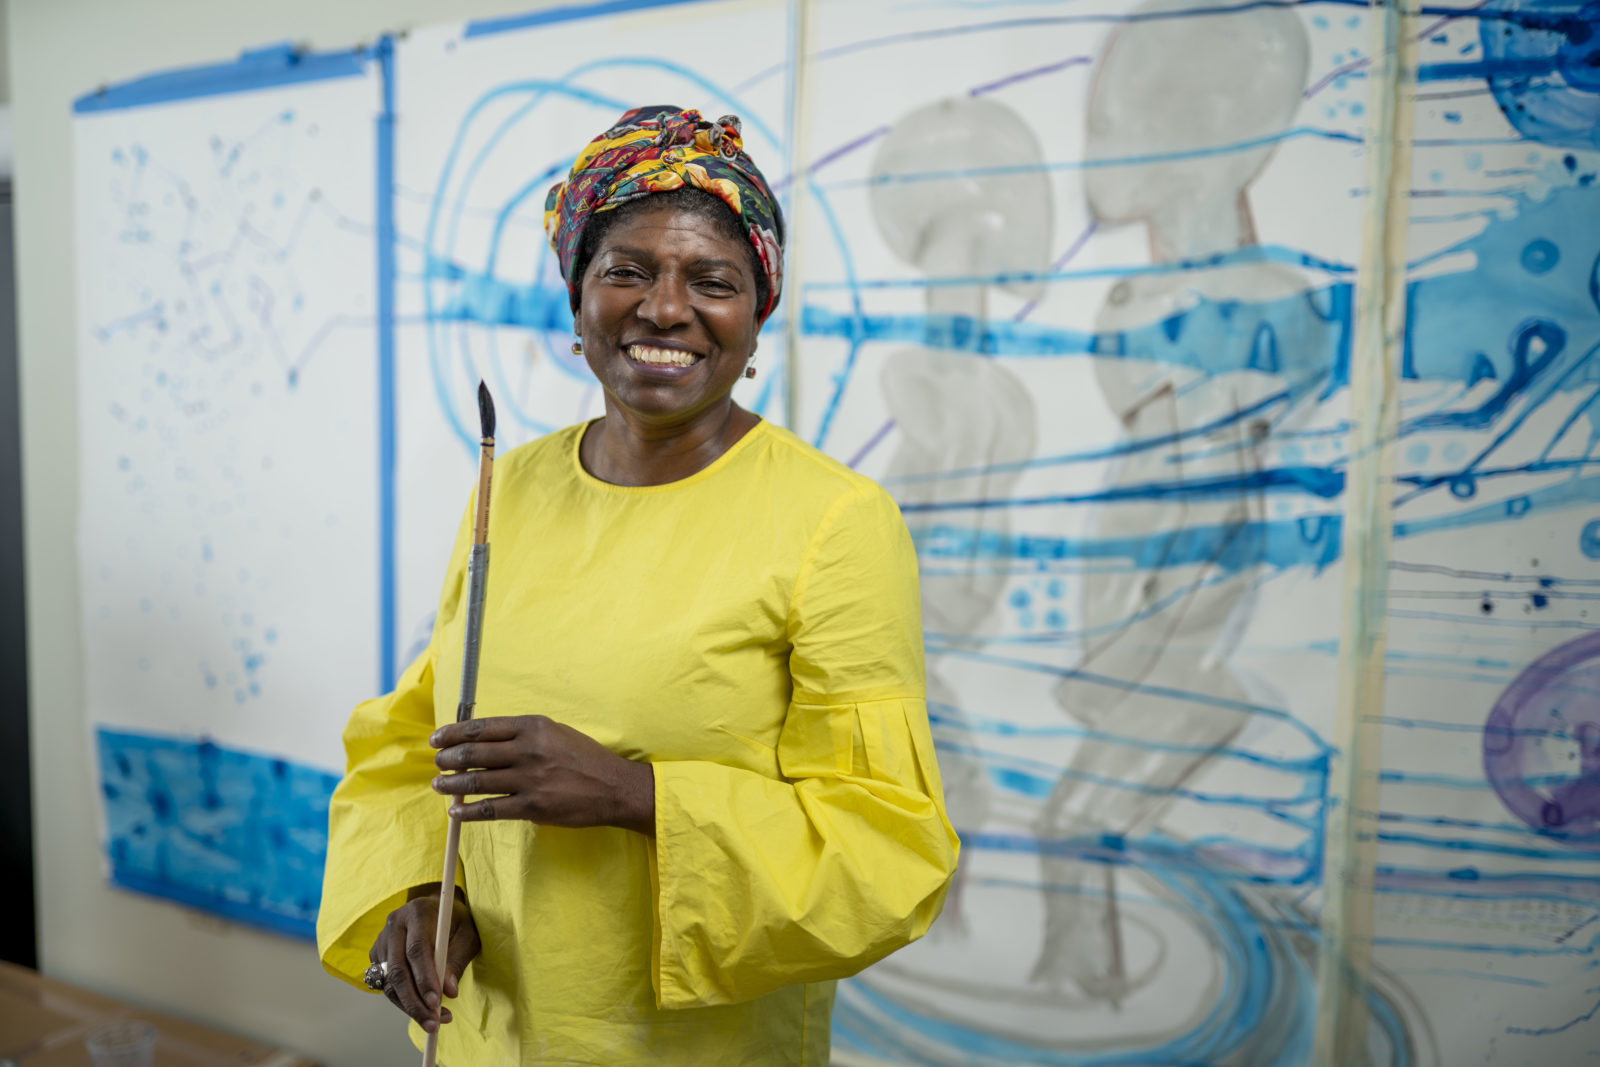 A dark-skinned woman in a bright yellow long barrel-sleeved dress stands in front of a wall of large artworks in process. She wears a colorful headwrap and smiles cheerfully while holding a long paintbrush.